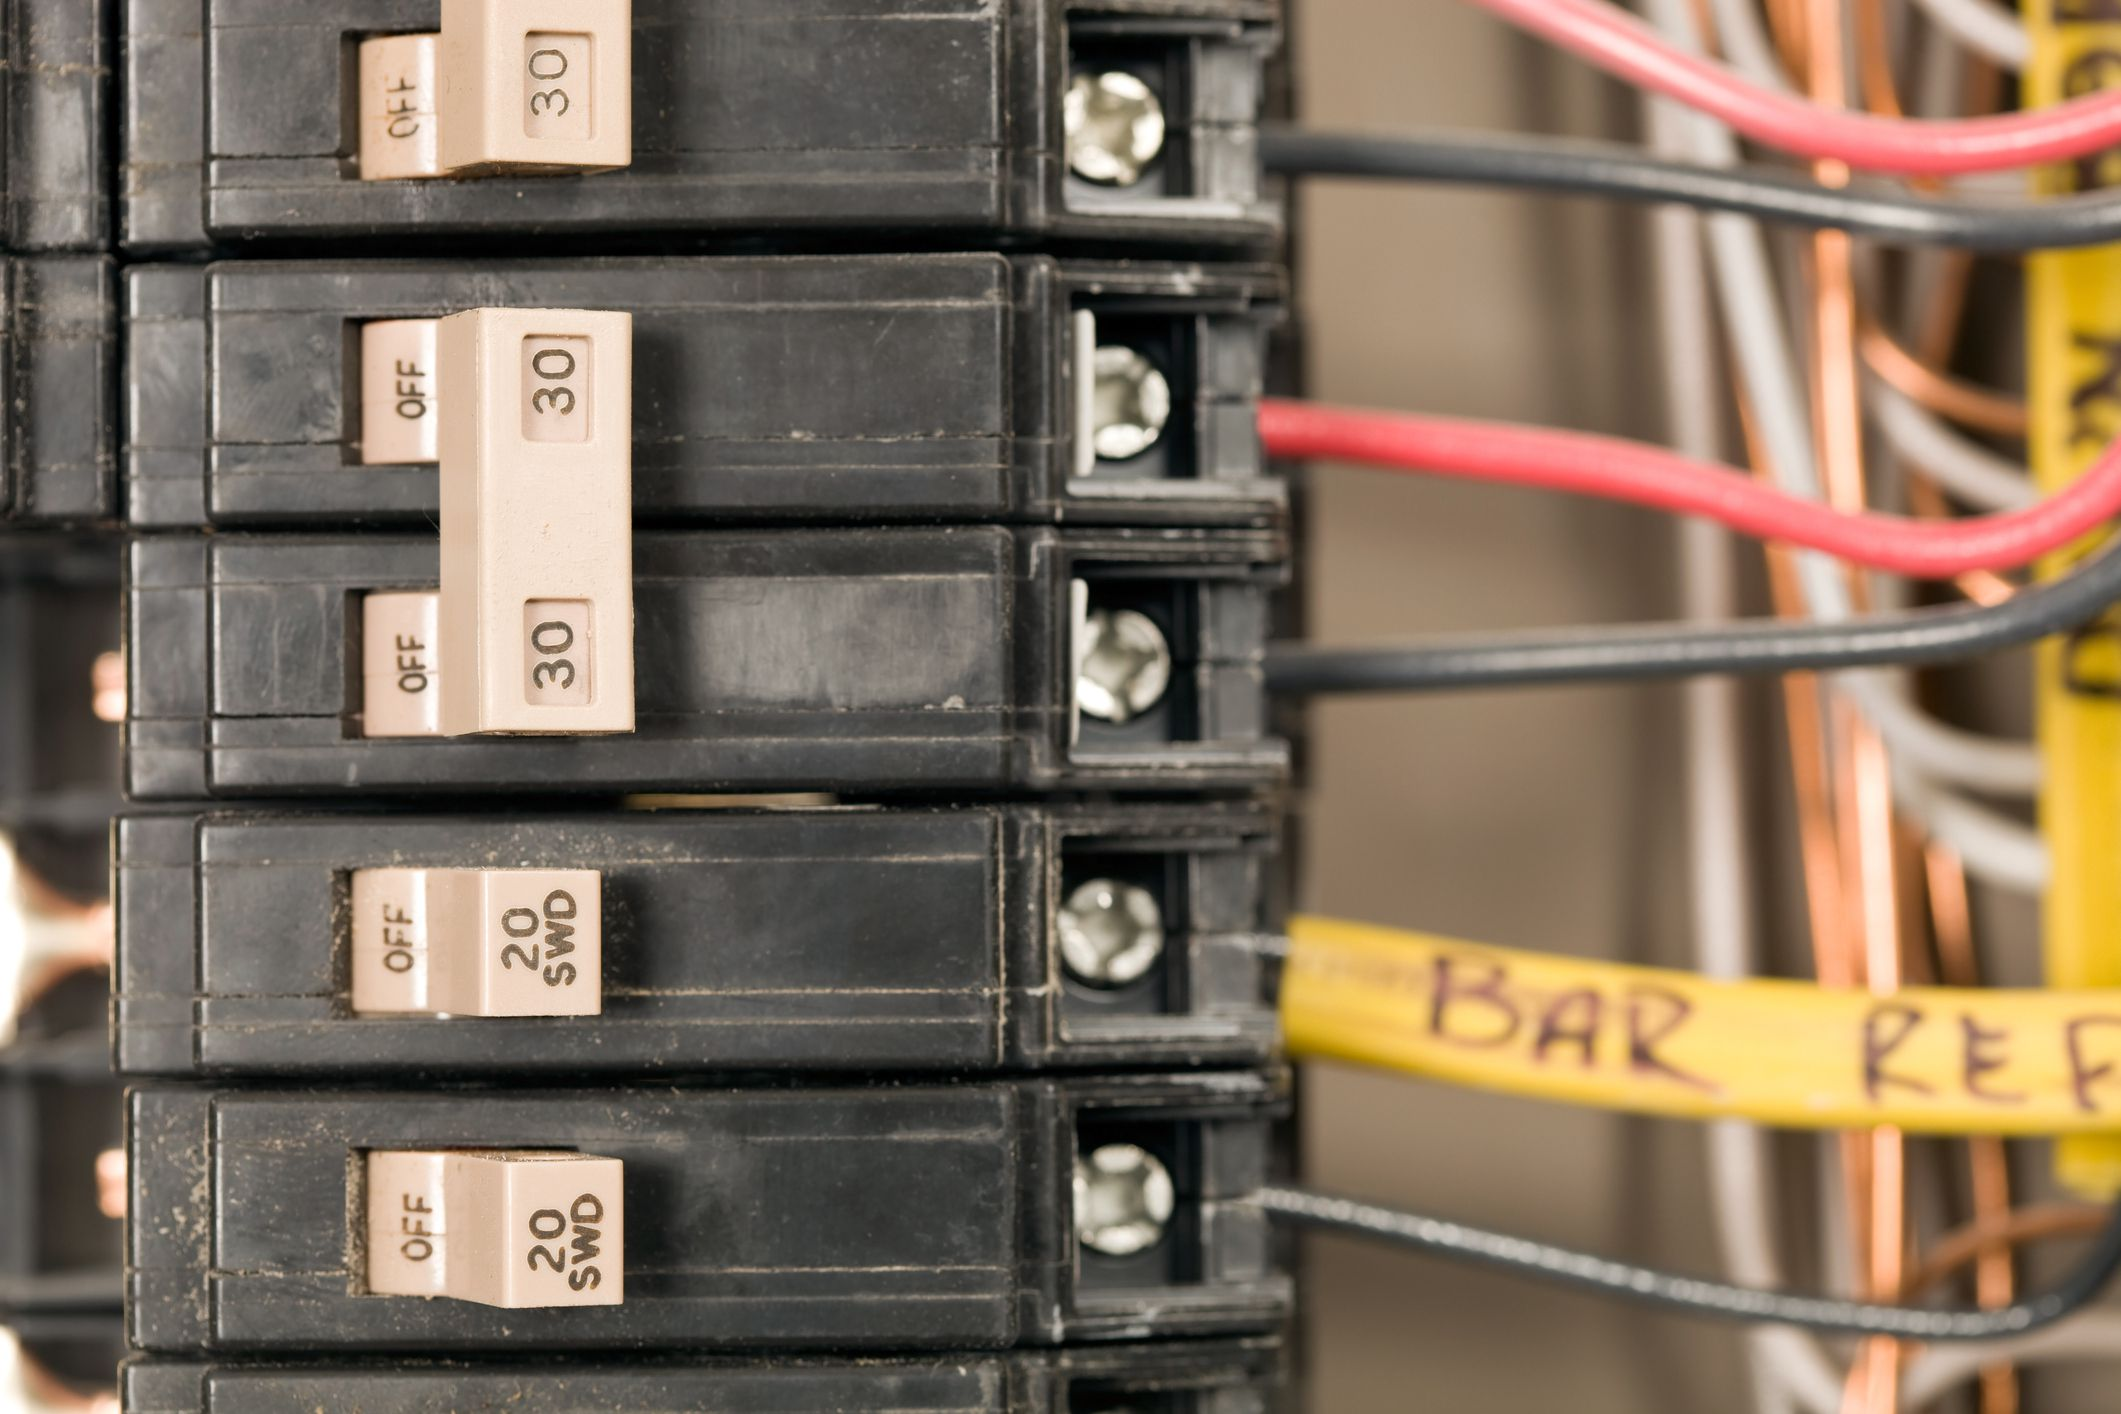 Magnificent 4 Wire Breaker Box Connection Ideas - Everything You ...